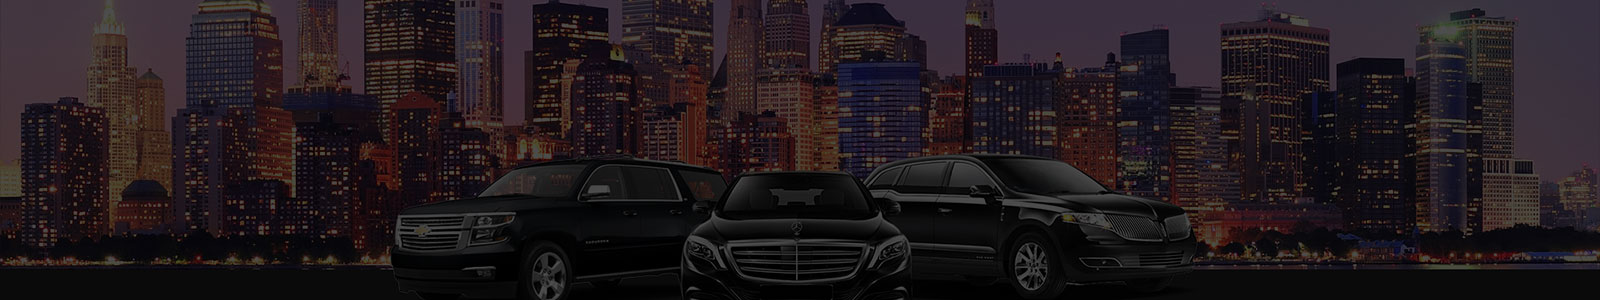 Executive Car Services in Los Angeles